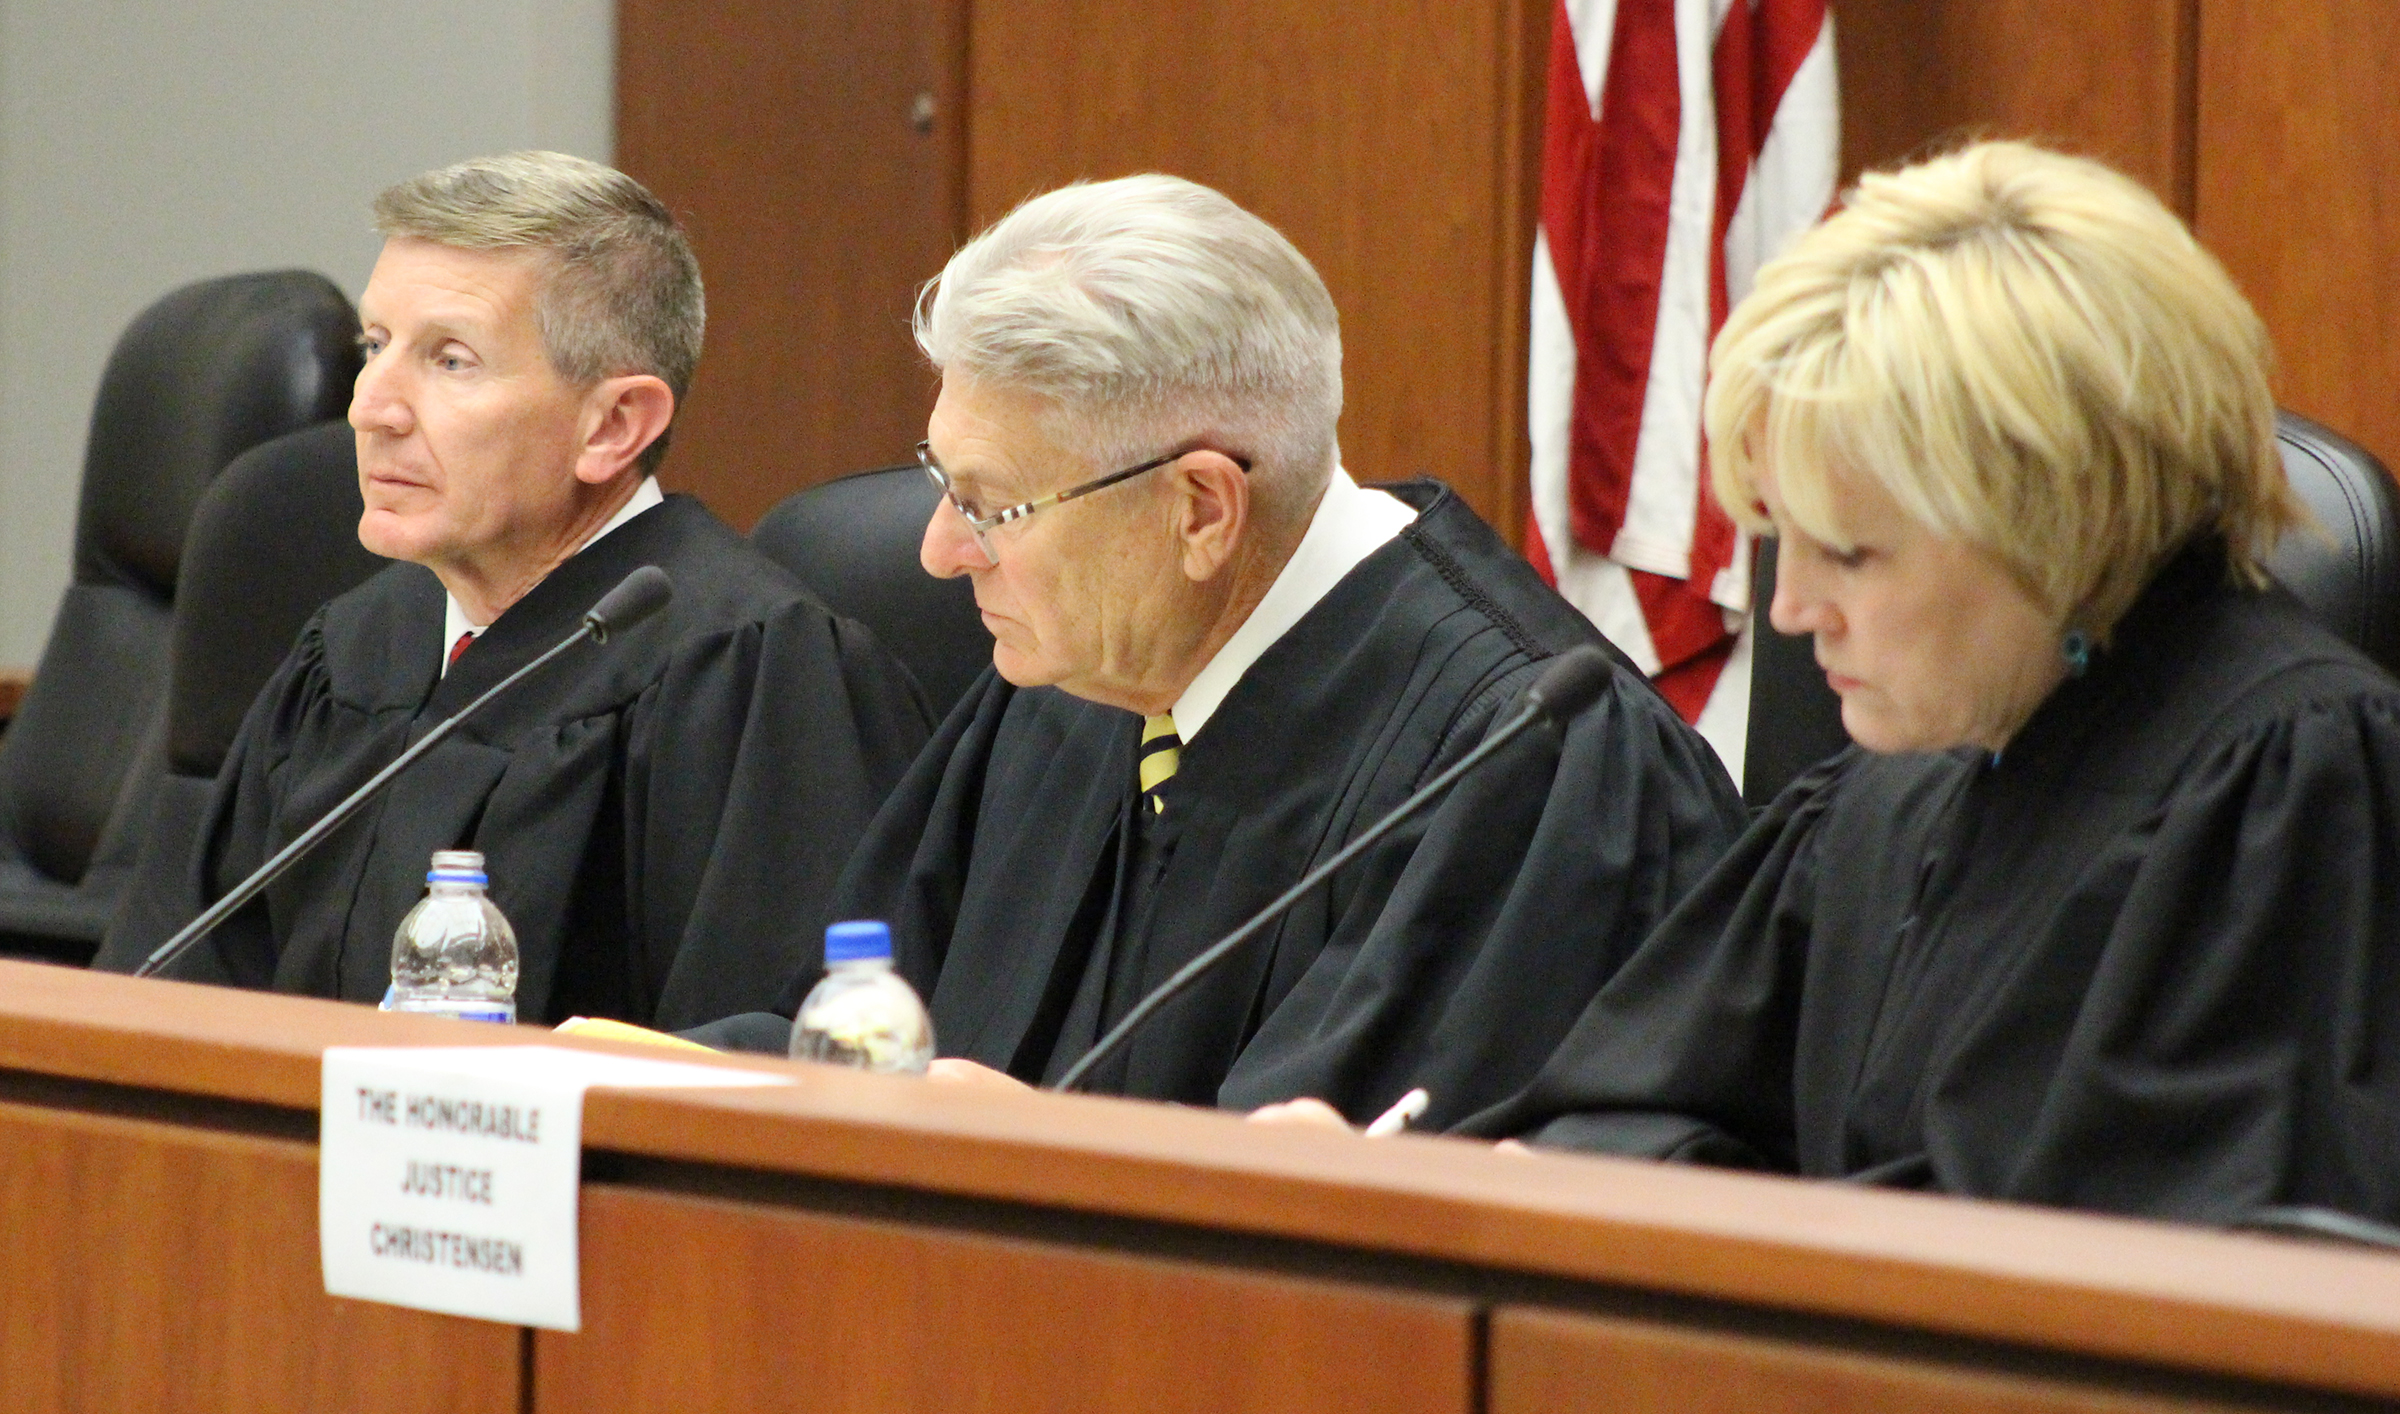 From left, U.S. Eighth Circuit Court of Appeals Judge Steven Grasz, Nebraska Supreme Court Chief Justice Michael Heavican and Iowa Supreme Court Justice Susan Christensen sit to hear the final round of the moot court competition at the Creighton University School of Law on Monday, Nov. 4, 2019. (Photo by Scott Stewart)